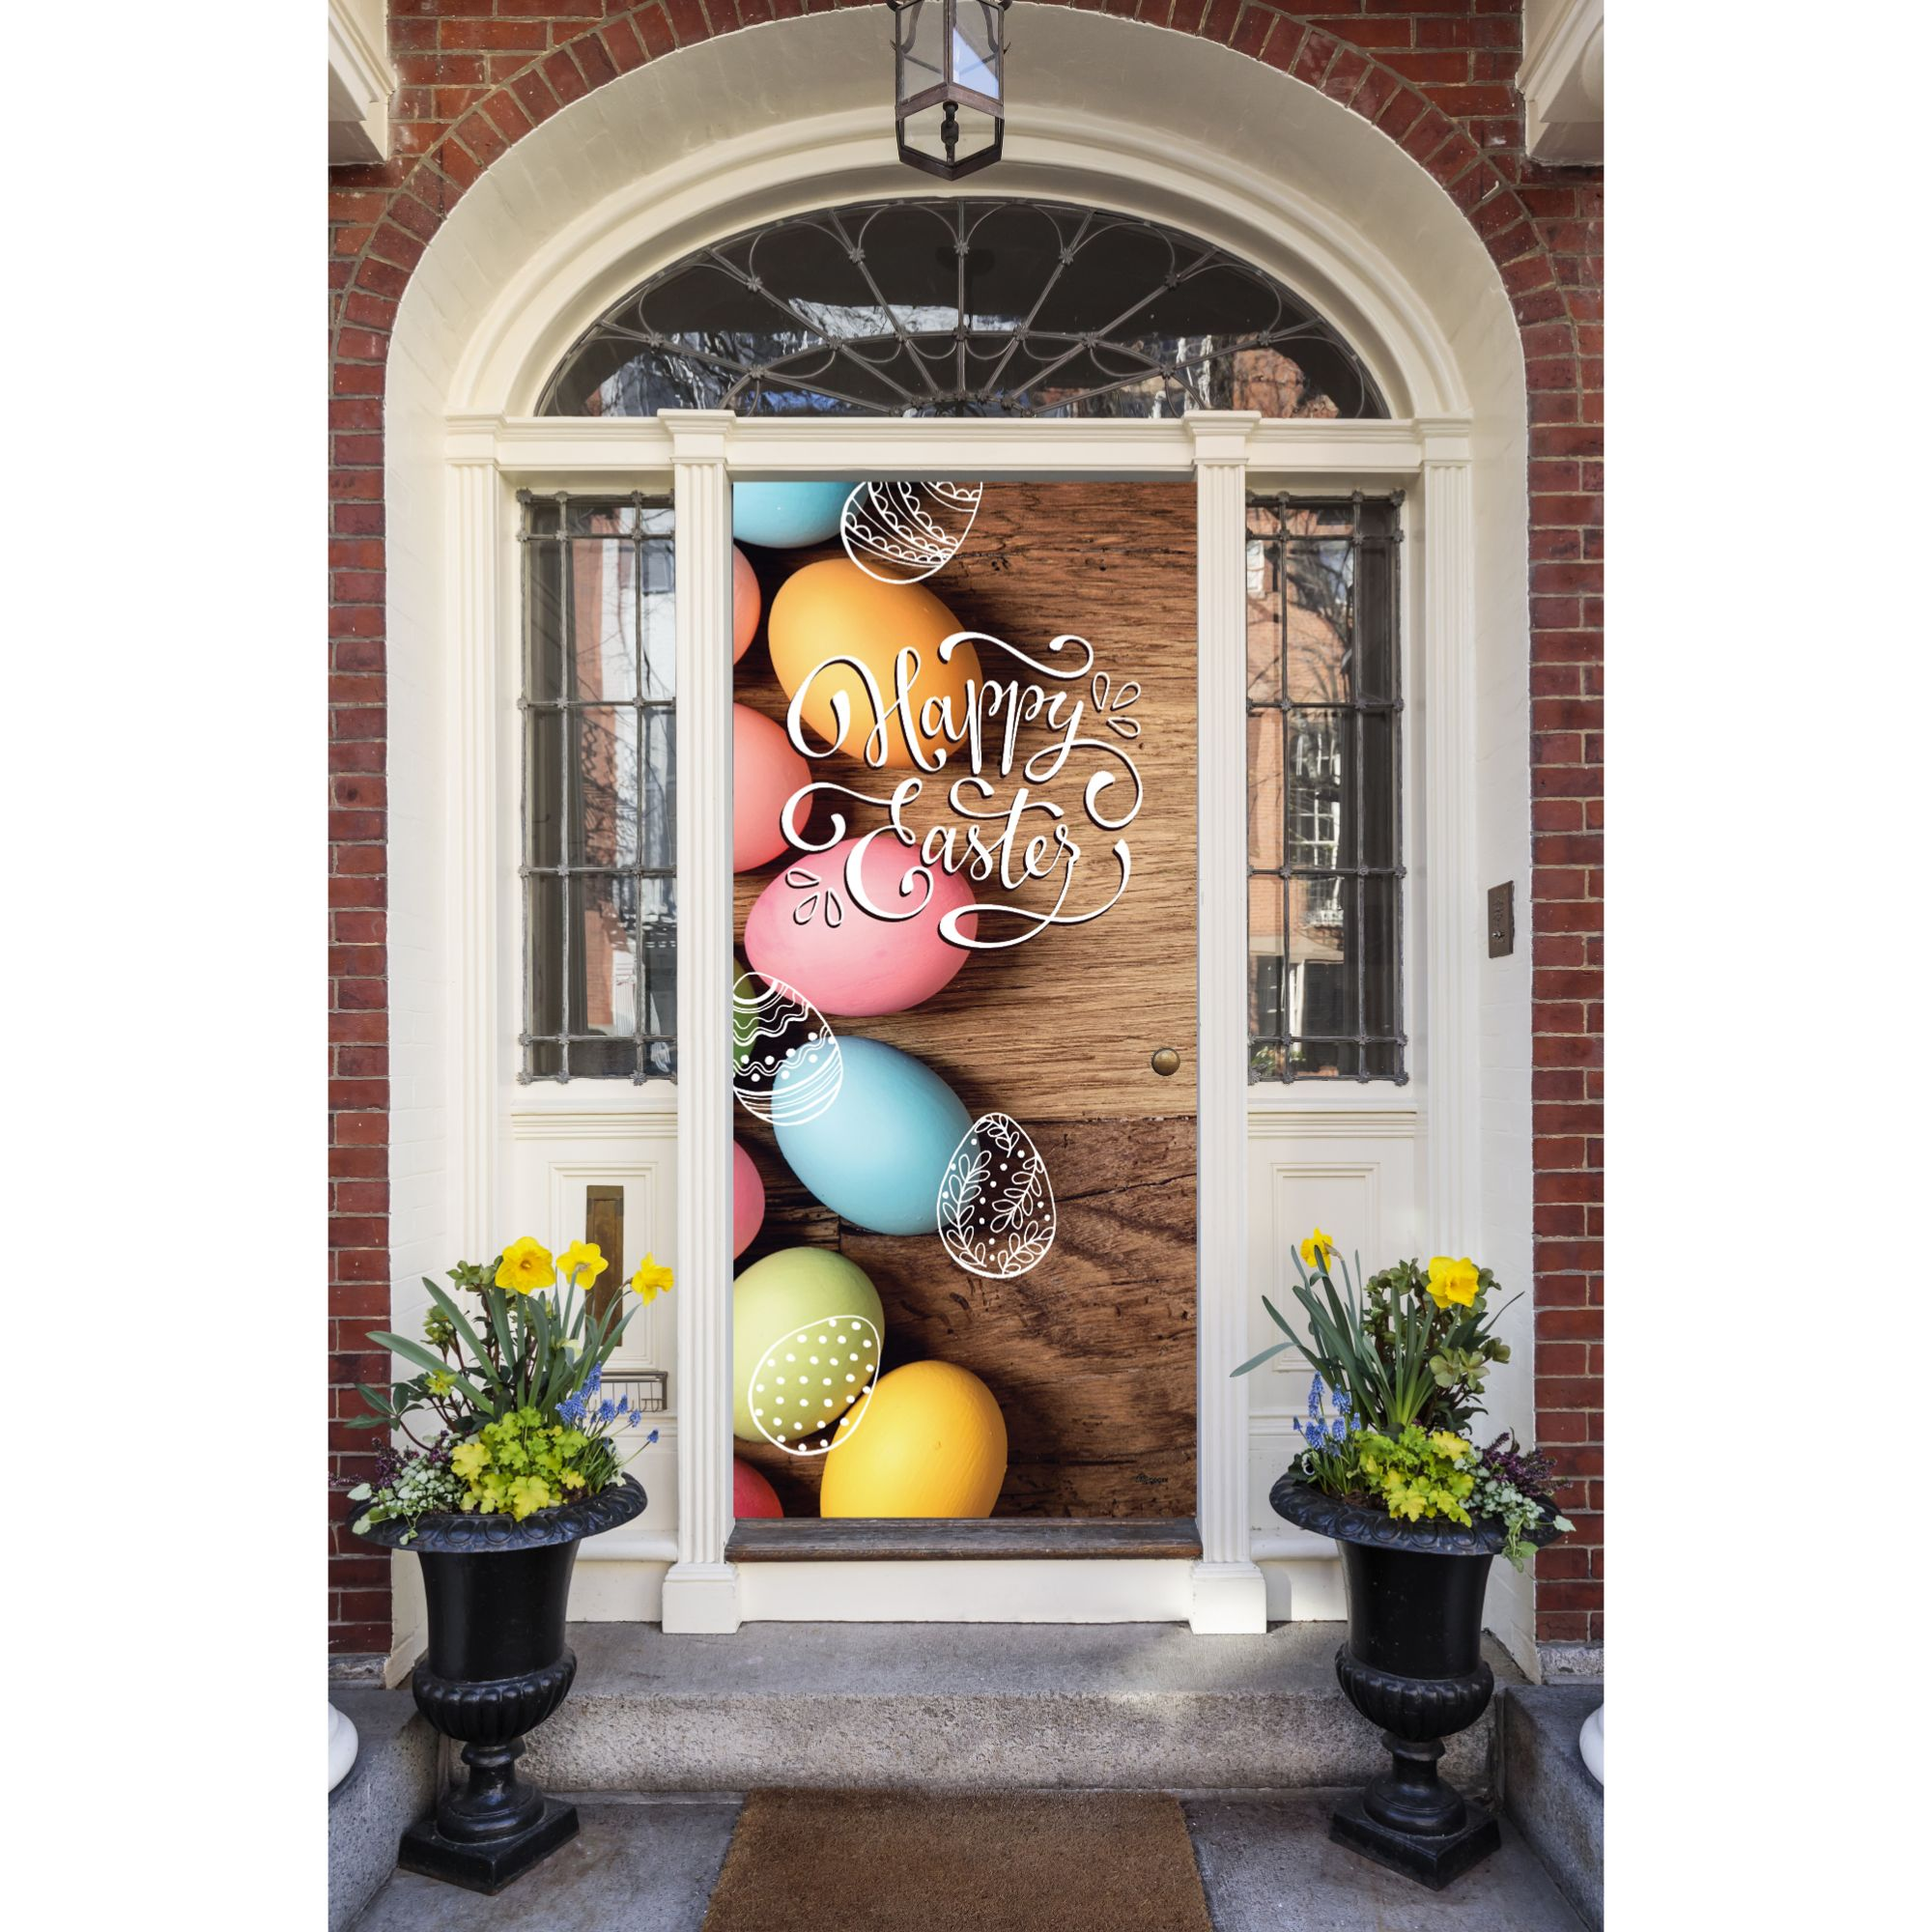 My Door Decor 9EAST-9 9 x 9 in. Happy Easter Eggs Holiday Front  Door Mural Sign Banner Decor, Multi Color